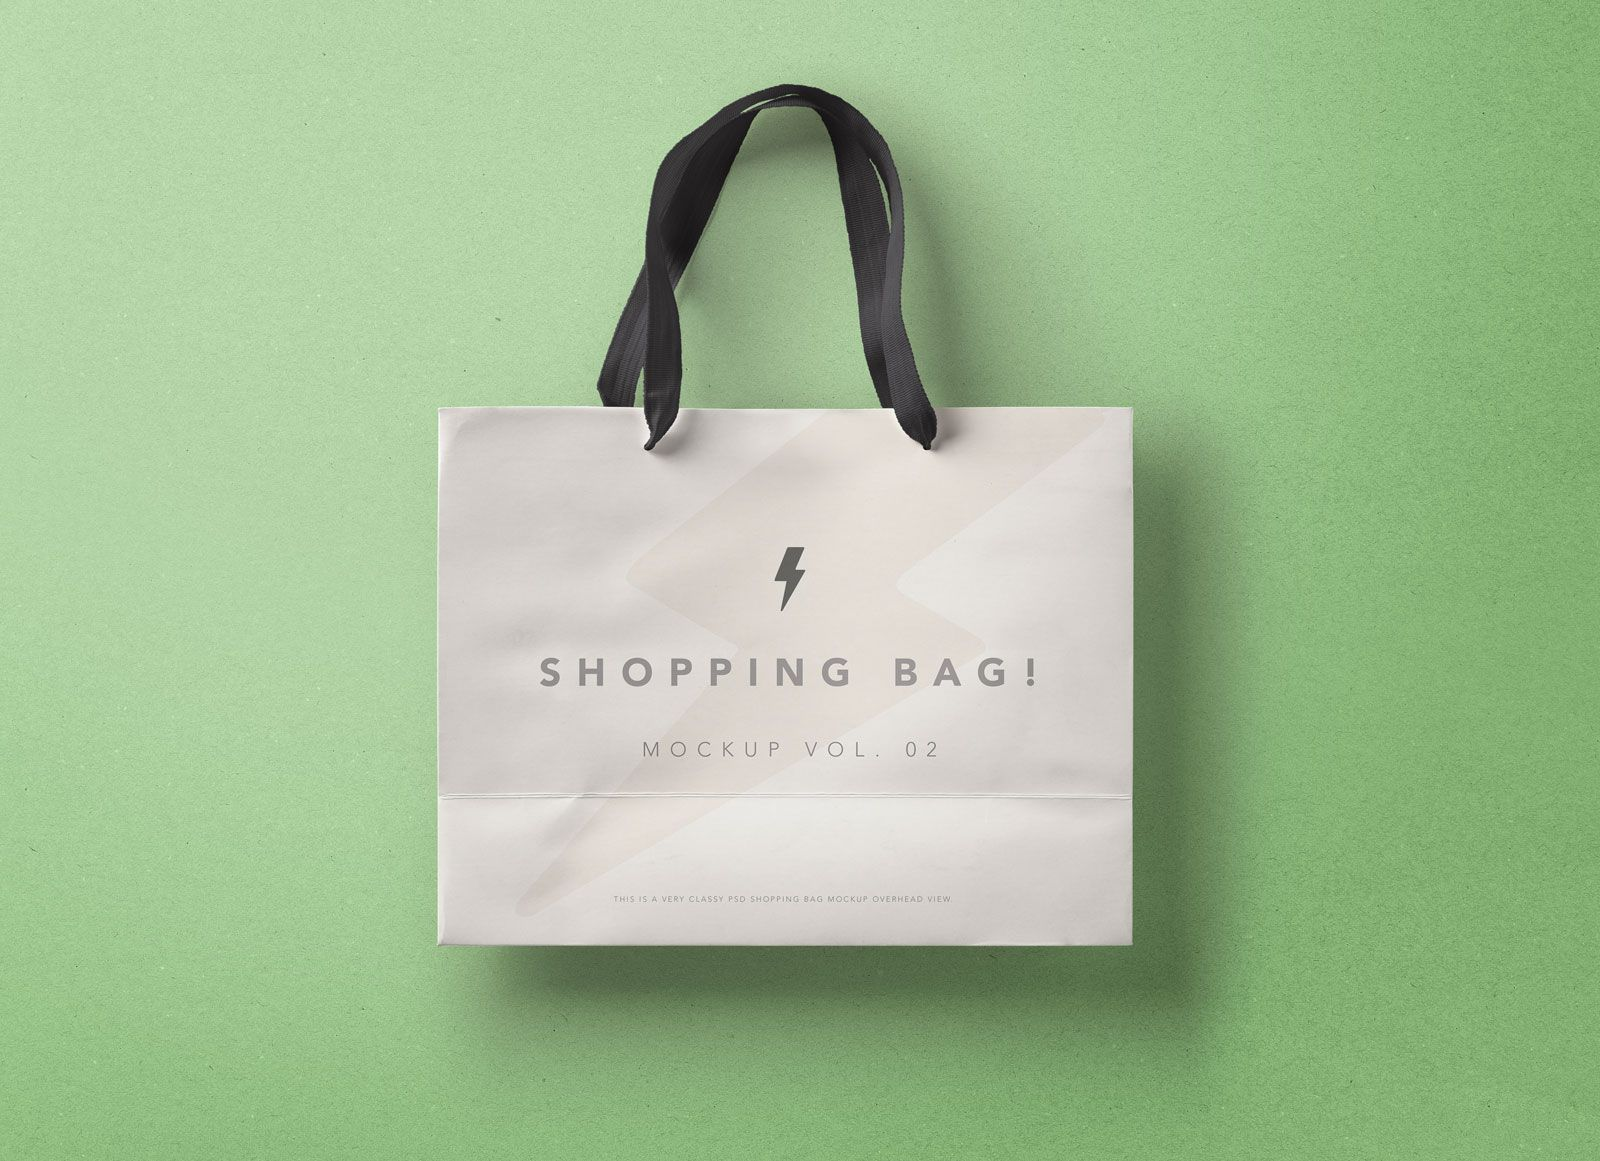 Download We Are Here With Yet Another Ultra High Quality Shopping Bag Mockup Psd Place Your Logo Design Typography Logotypes Or De Bag Mockup Bags Paper Shopping Bag